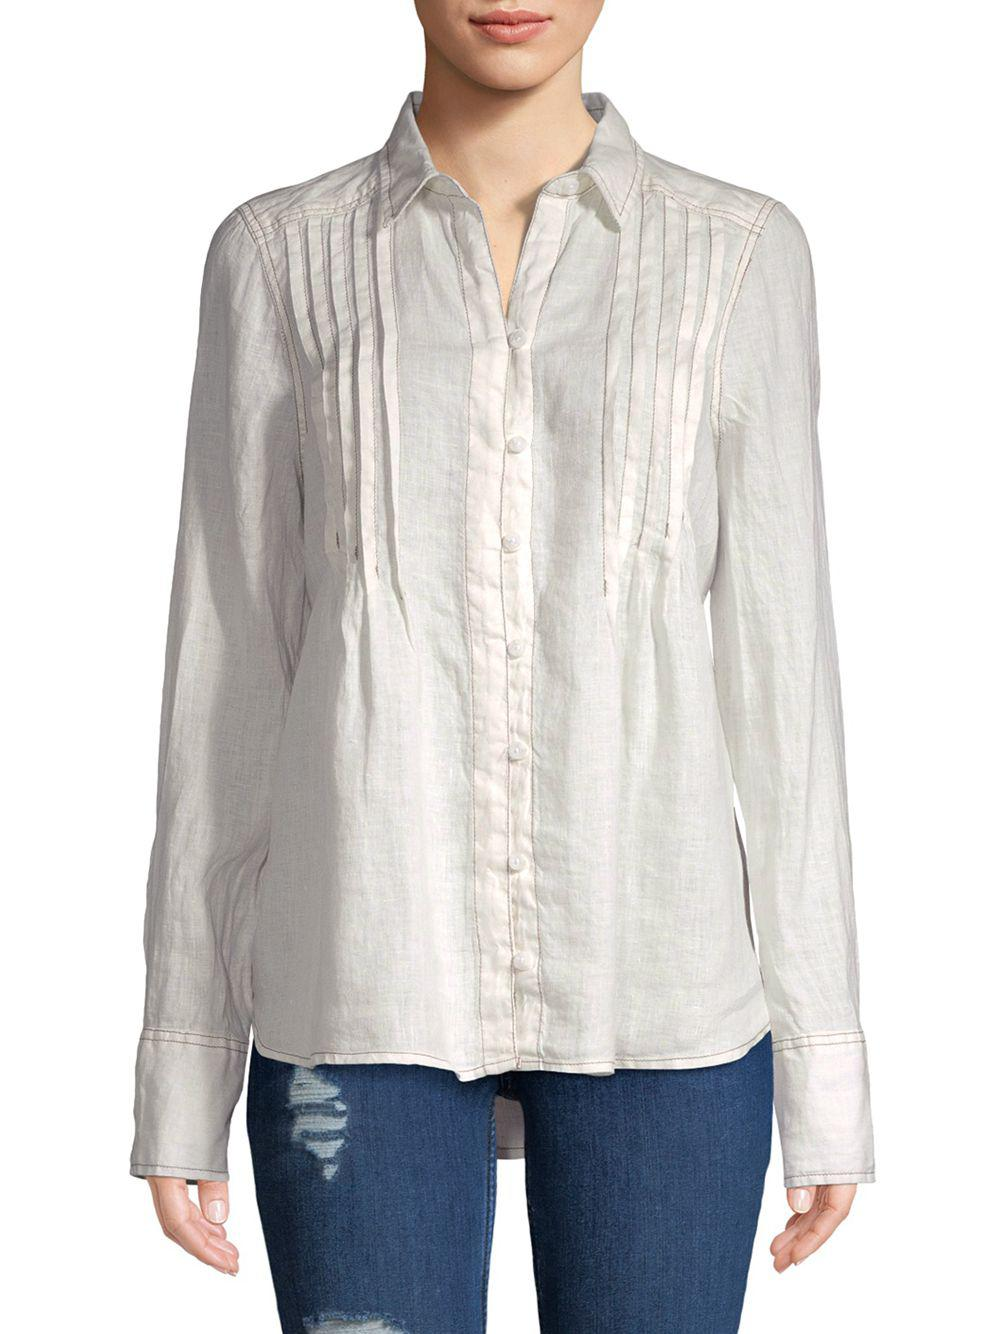 Free People Breezy Mornings Linen Button Down - S